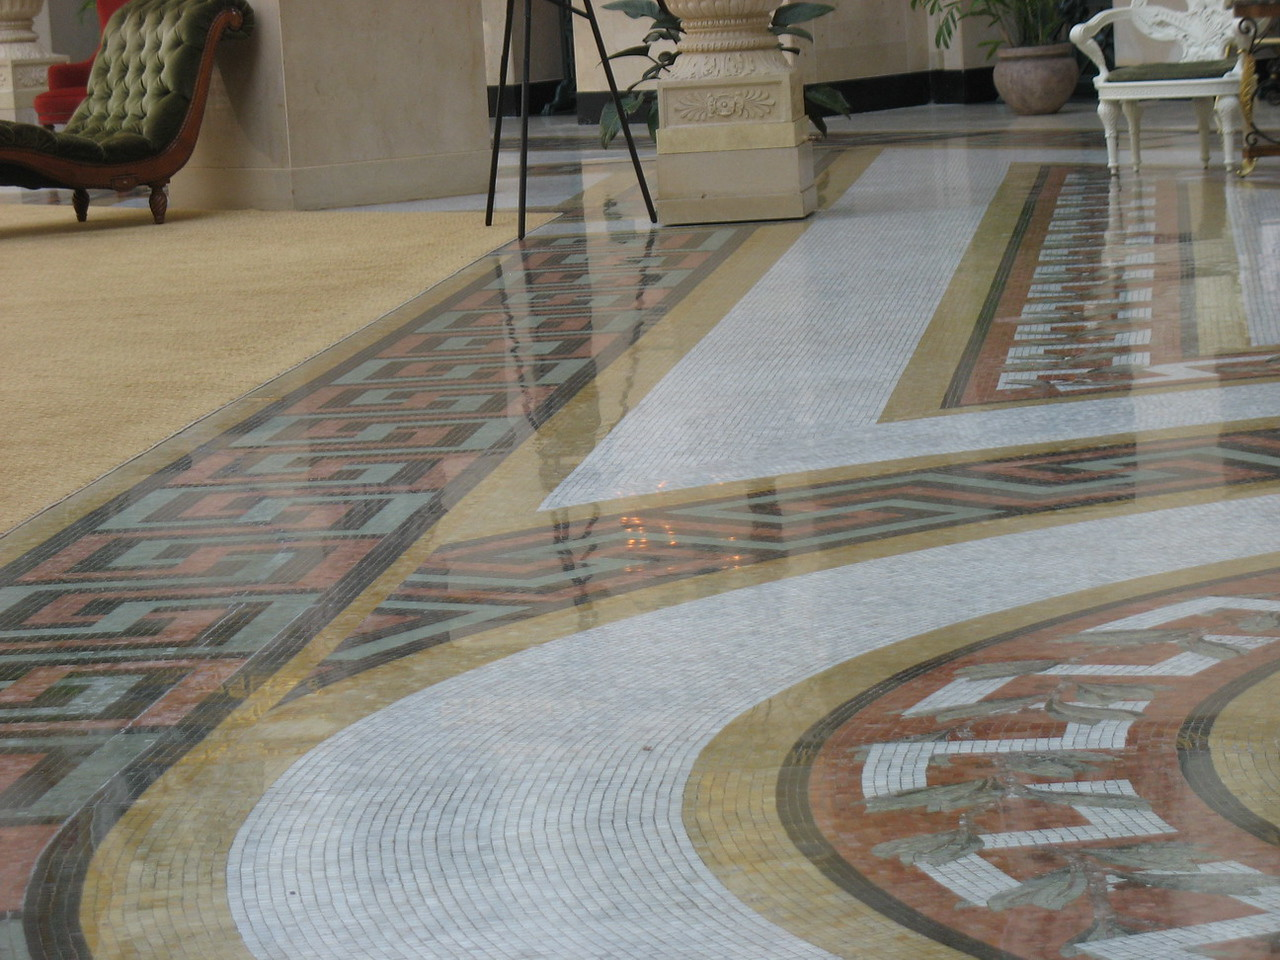 The marble cube floor which takes its cue from the chandelier. It remains in the perimeter of the atrium, but in the centre, the original floor was destroyed in the process of stabilizing the building and there is now a large carpet.